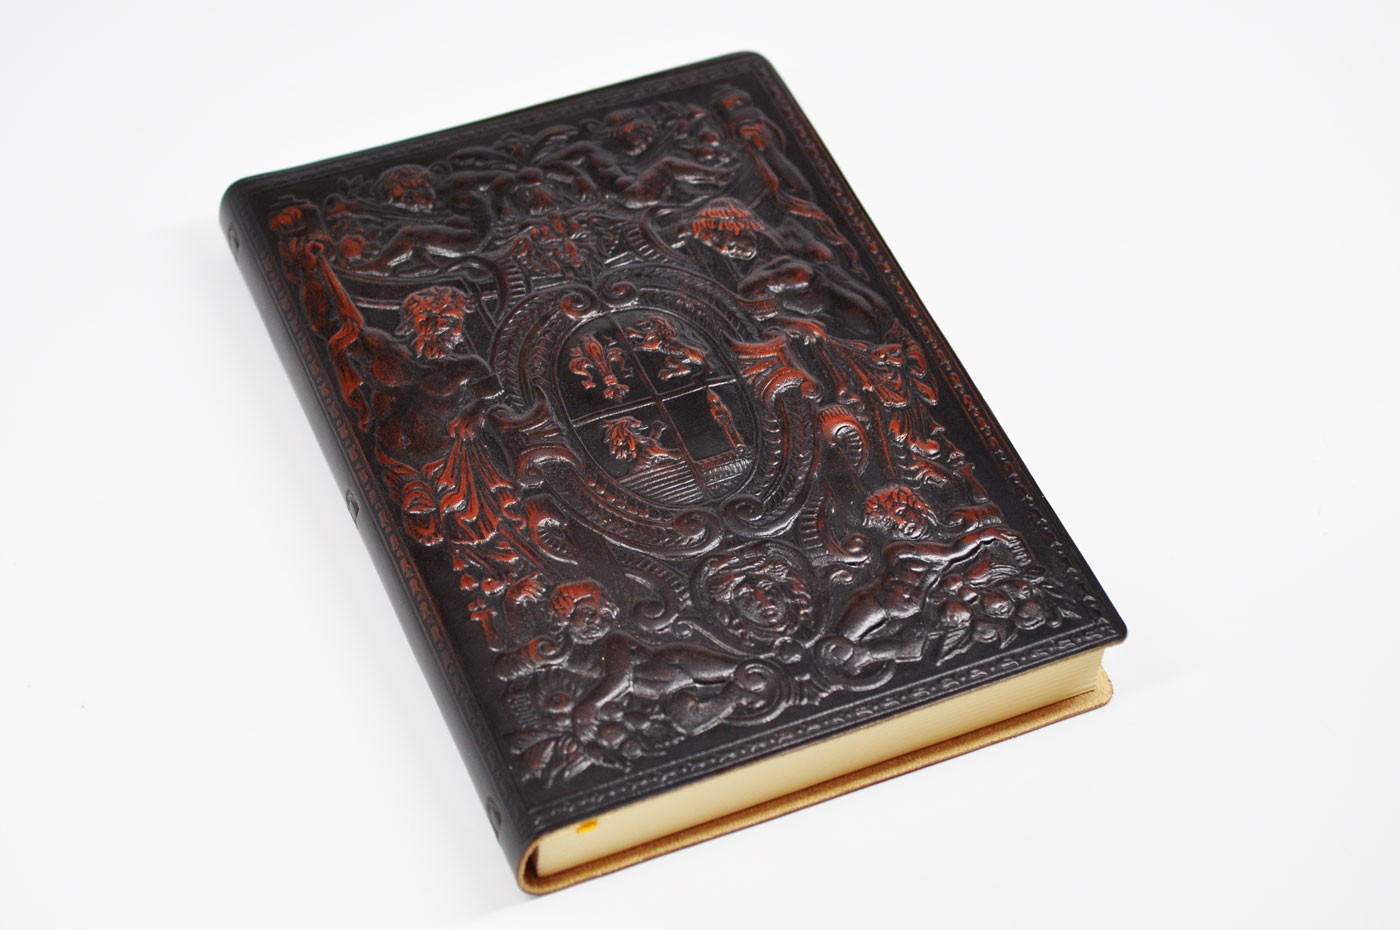 Old World Leather Journal, A Unique Journal Crafted In